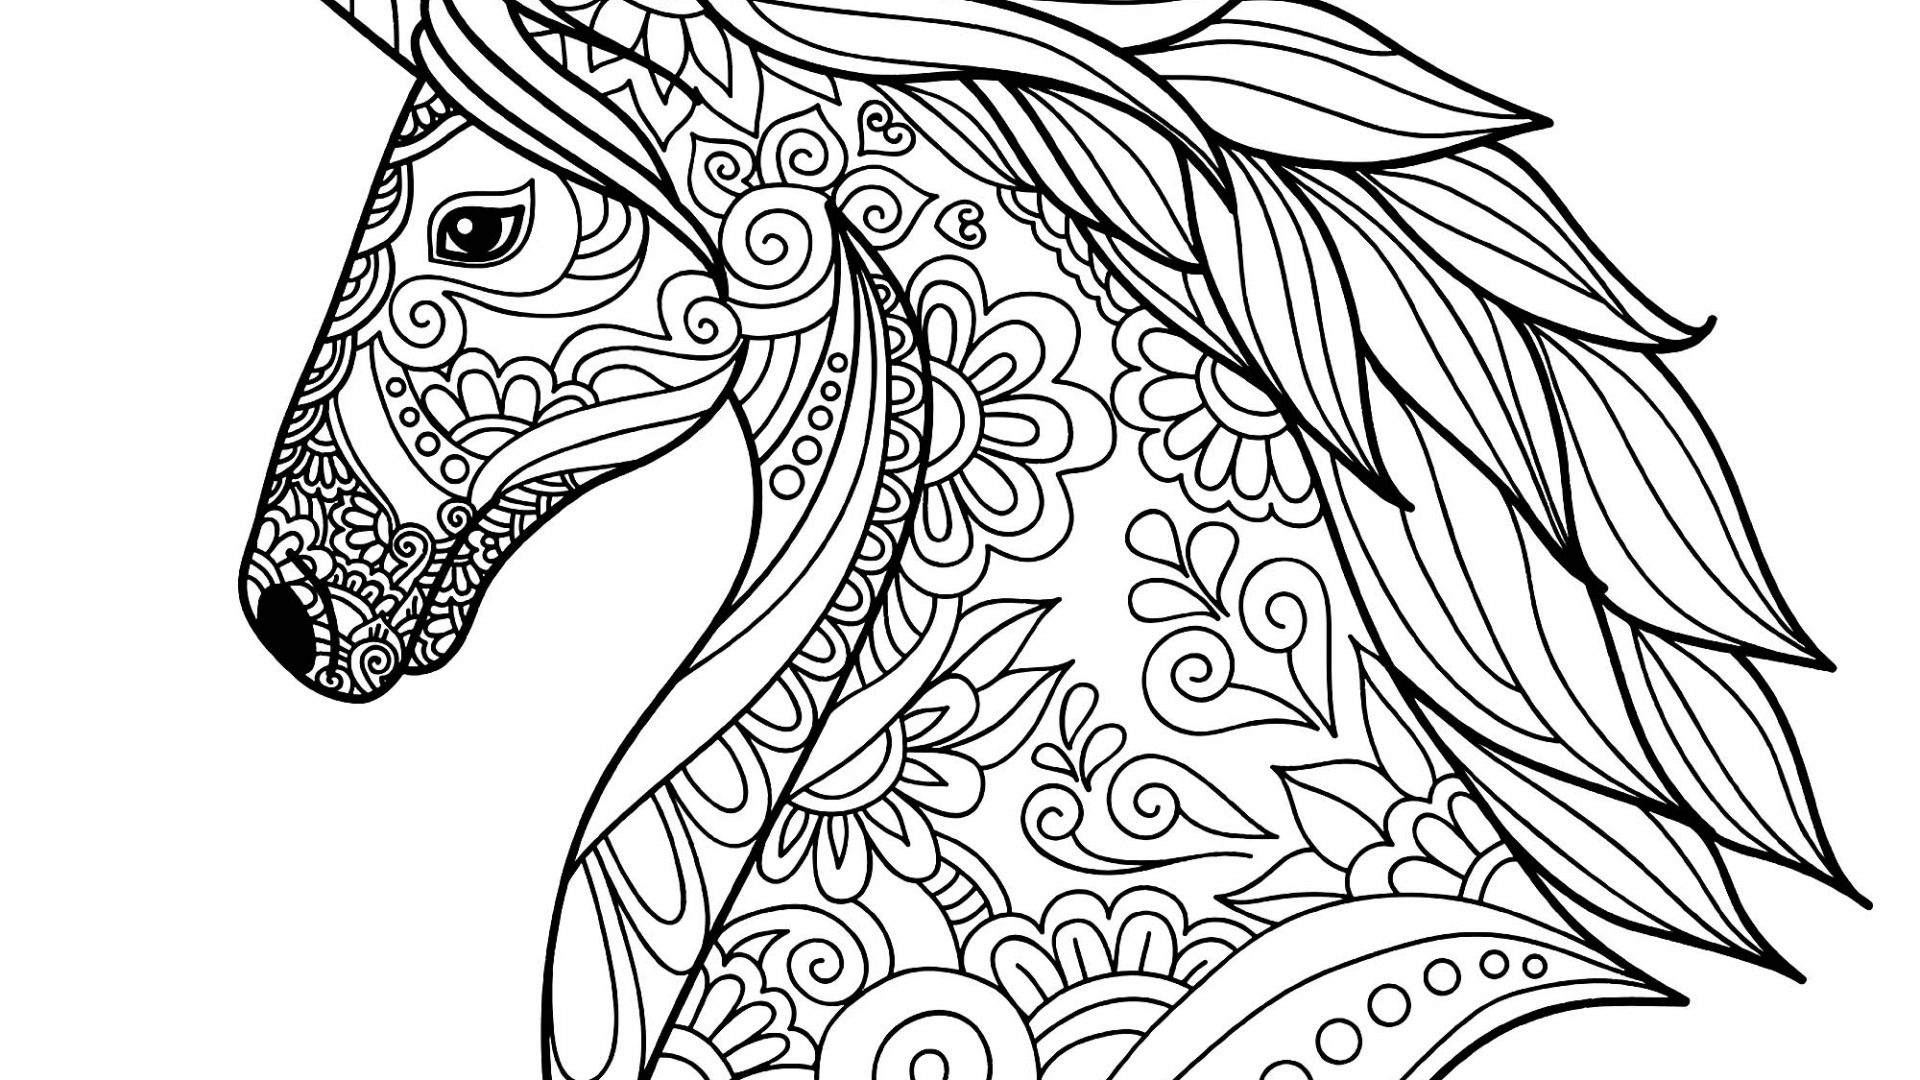 Adult Coloring Pages To Print Unicorn Coloring Pages To Print Colouring Sheets Printable Emoji For